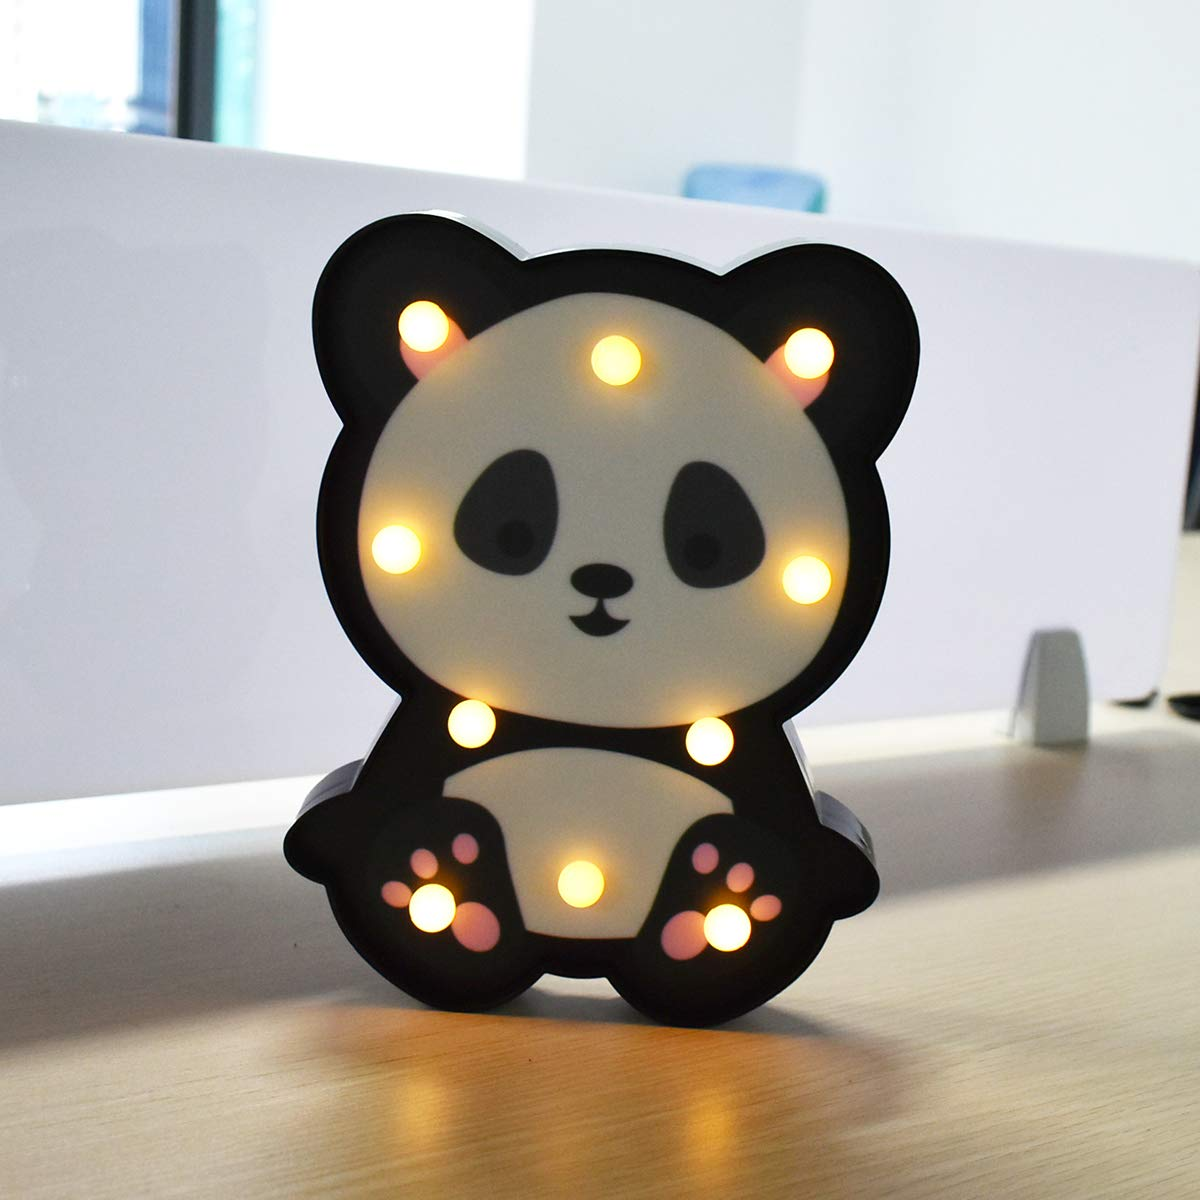 Panda LED Night Light Sign Novelty Animal Decoration Children's Room Bedside Lamp Kids Toy-Battery Operated LED-Portable Baby Kid Sleeping Bedroom LED Glow Nursery Lamps- Panda